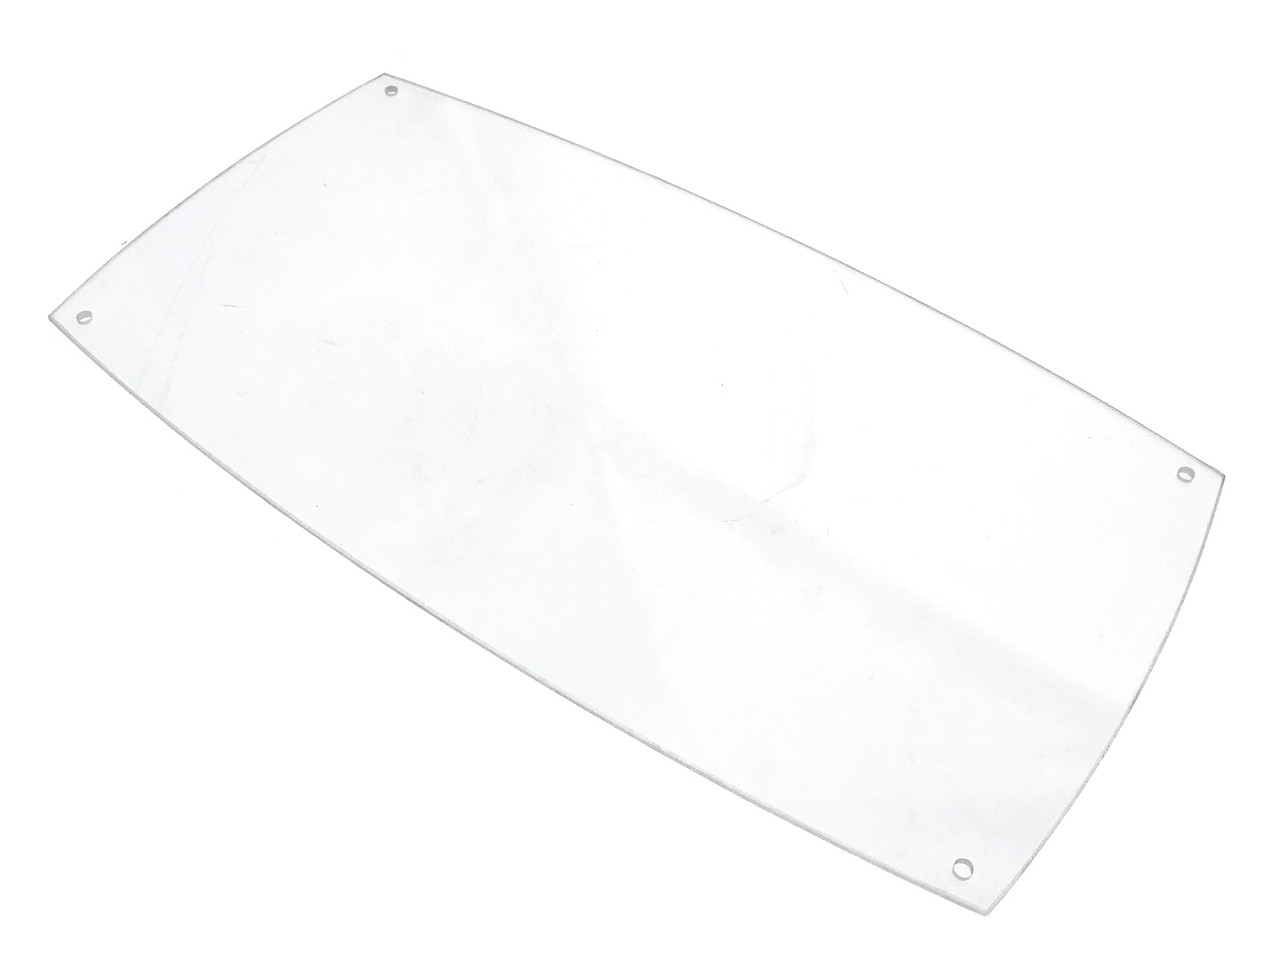 Acrylic Cover Display Panel 1 for Let's Bounce (PG1-FP-007-R0)